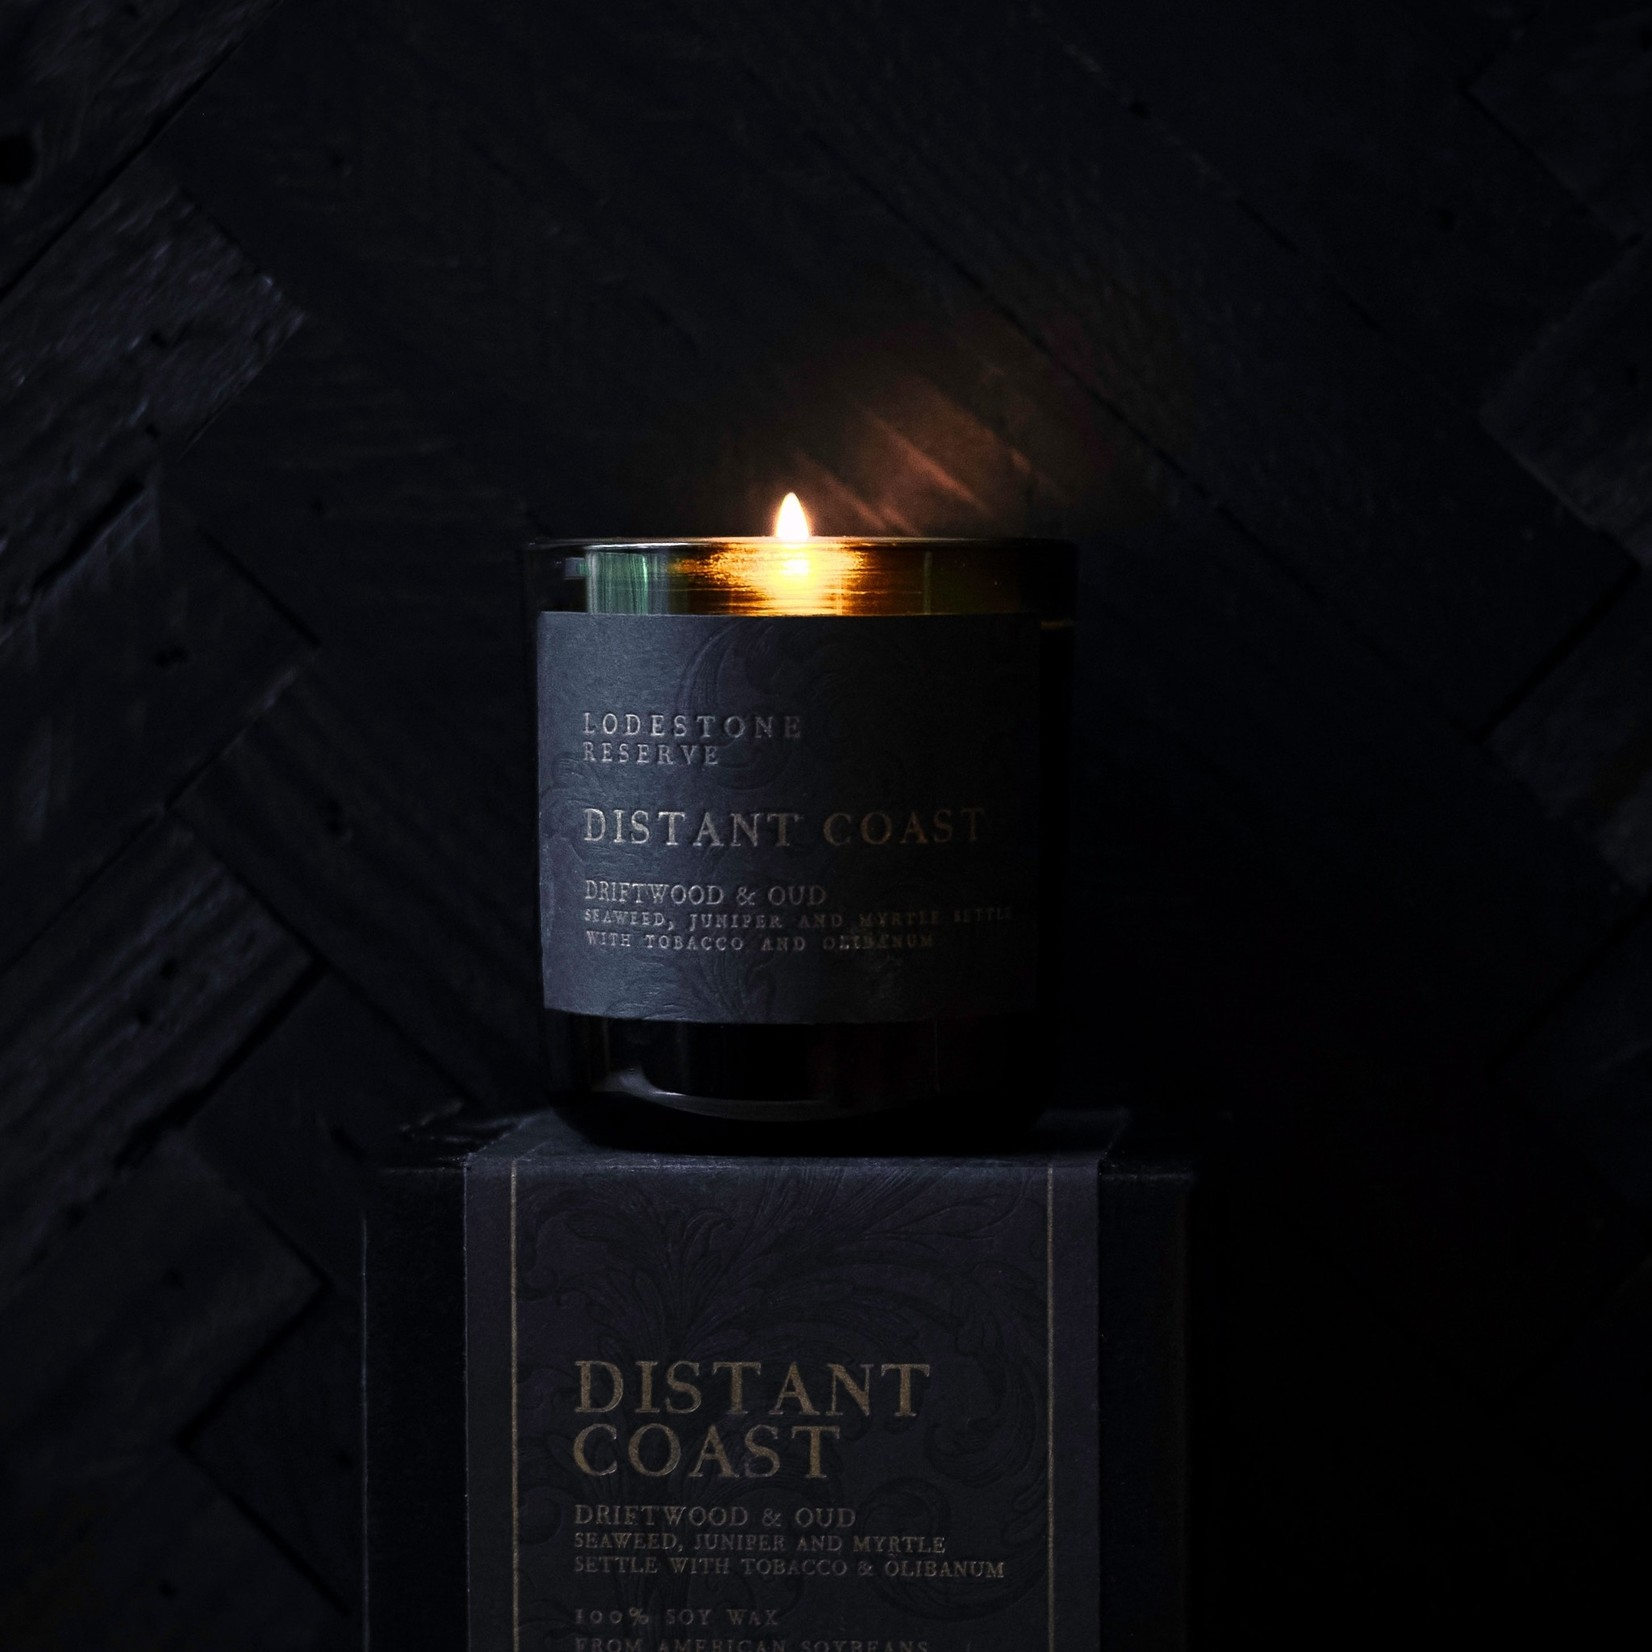 Lodestone Vintage Green Candle Distant Coast